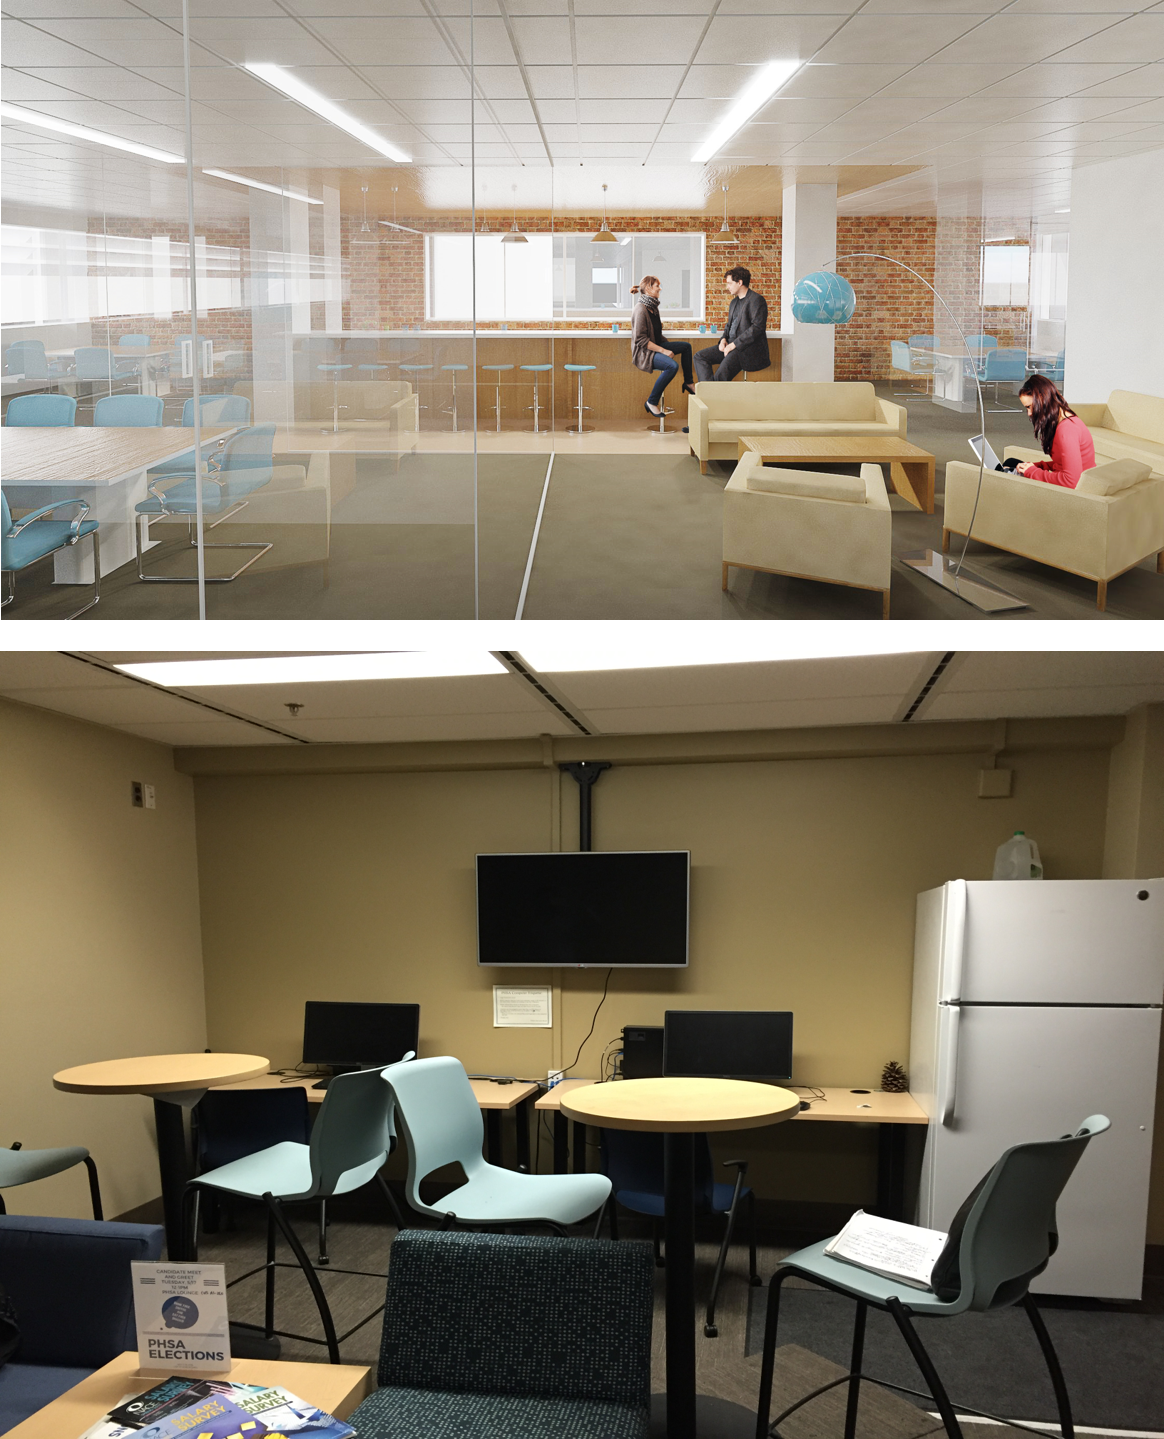 UCLA FIELDING SCHOOL OF PUBLIC HEALTH. Break rooms are brought out from the dark and into the light occupying a prominent spot in the middle of all the action on every floor. New school above, old school below.